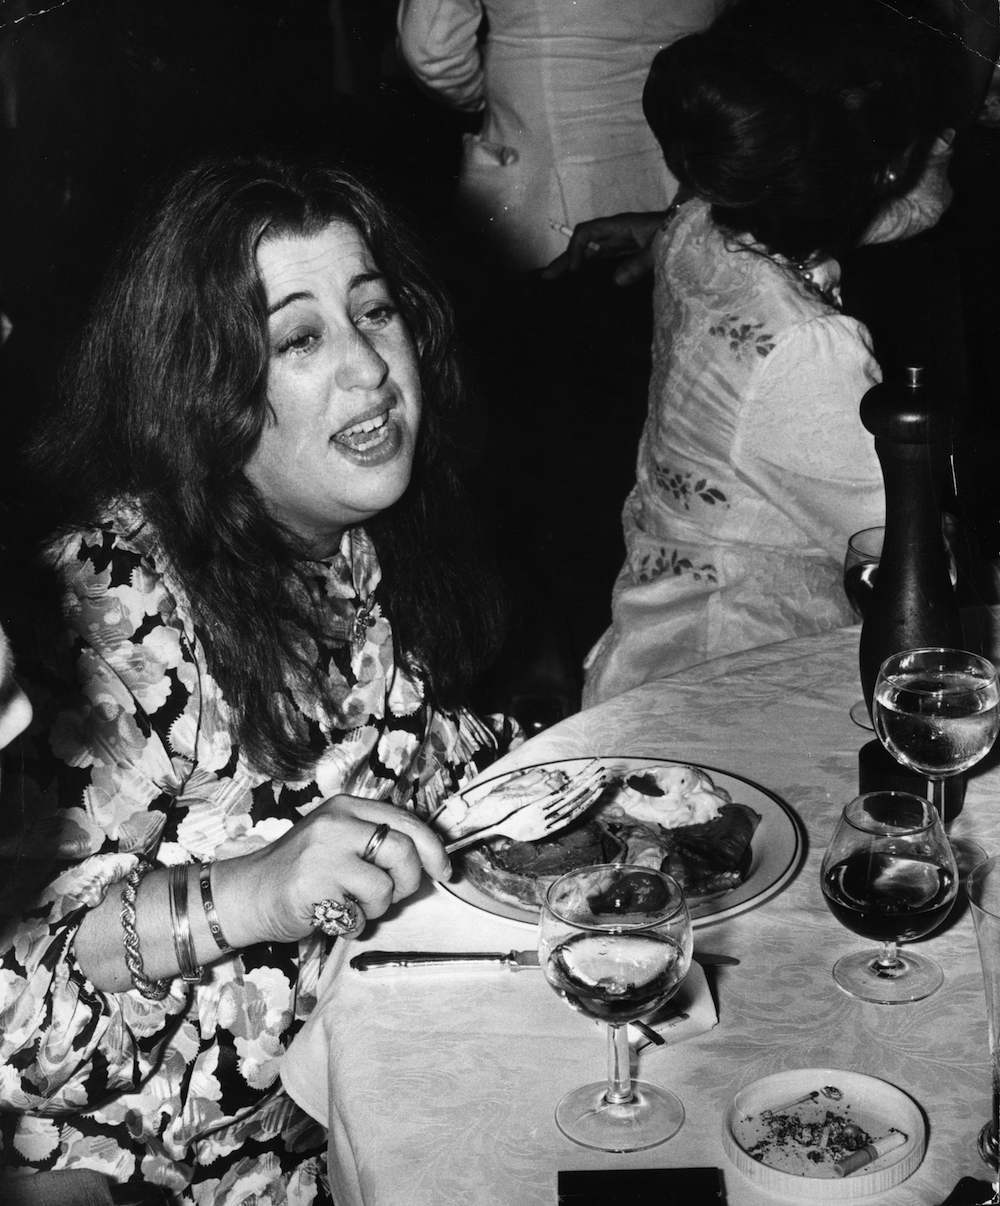 American musician Mama Cass Elliot (1941 - 1974) formerly of the Los Angeles folk-pop harmony group The Mamas And The Papas eats at a party at Crockford's casino in London, circa 1974. (Photo by Joe Bangay/Evening Standard/Getty Images)